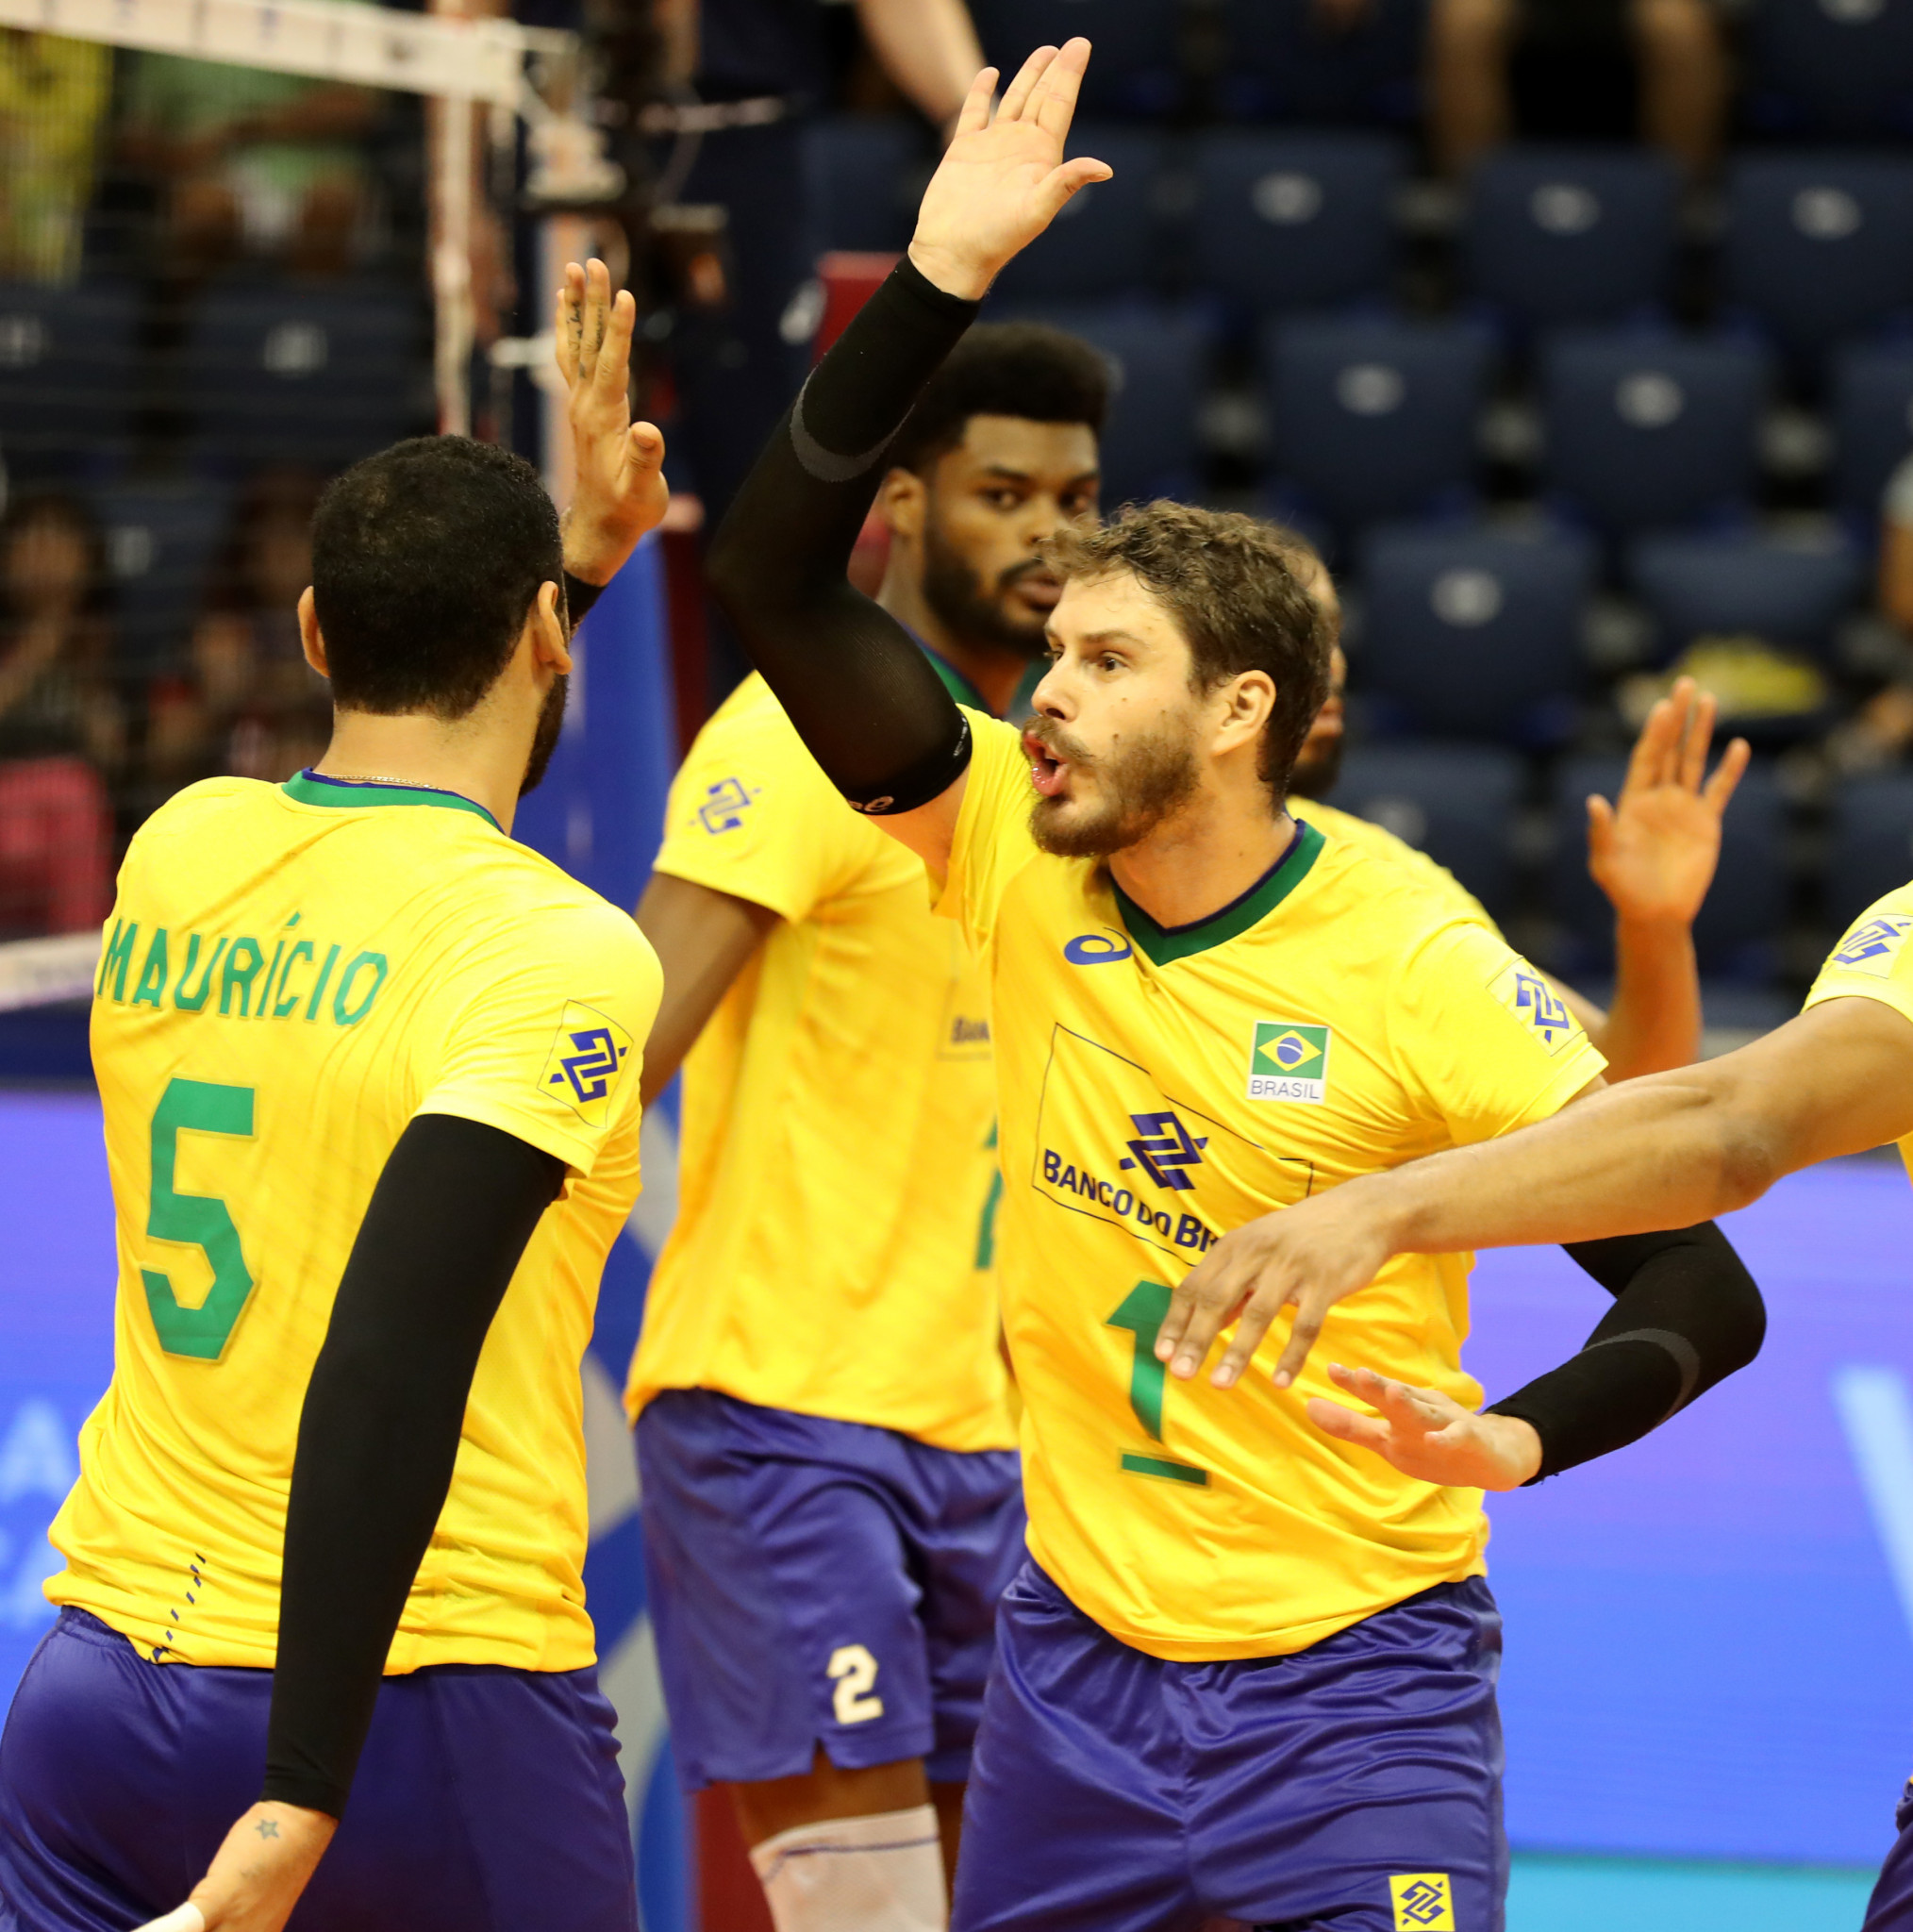 Brazil opened their Pool A account with victory over Puerto Rico ©FIVB